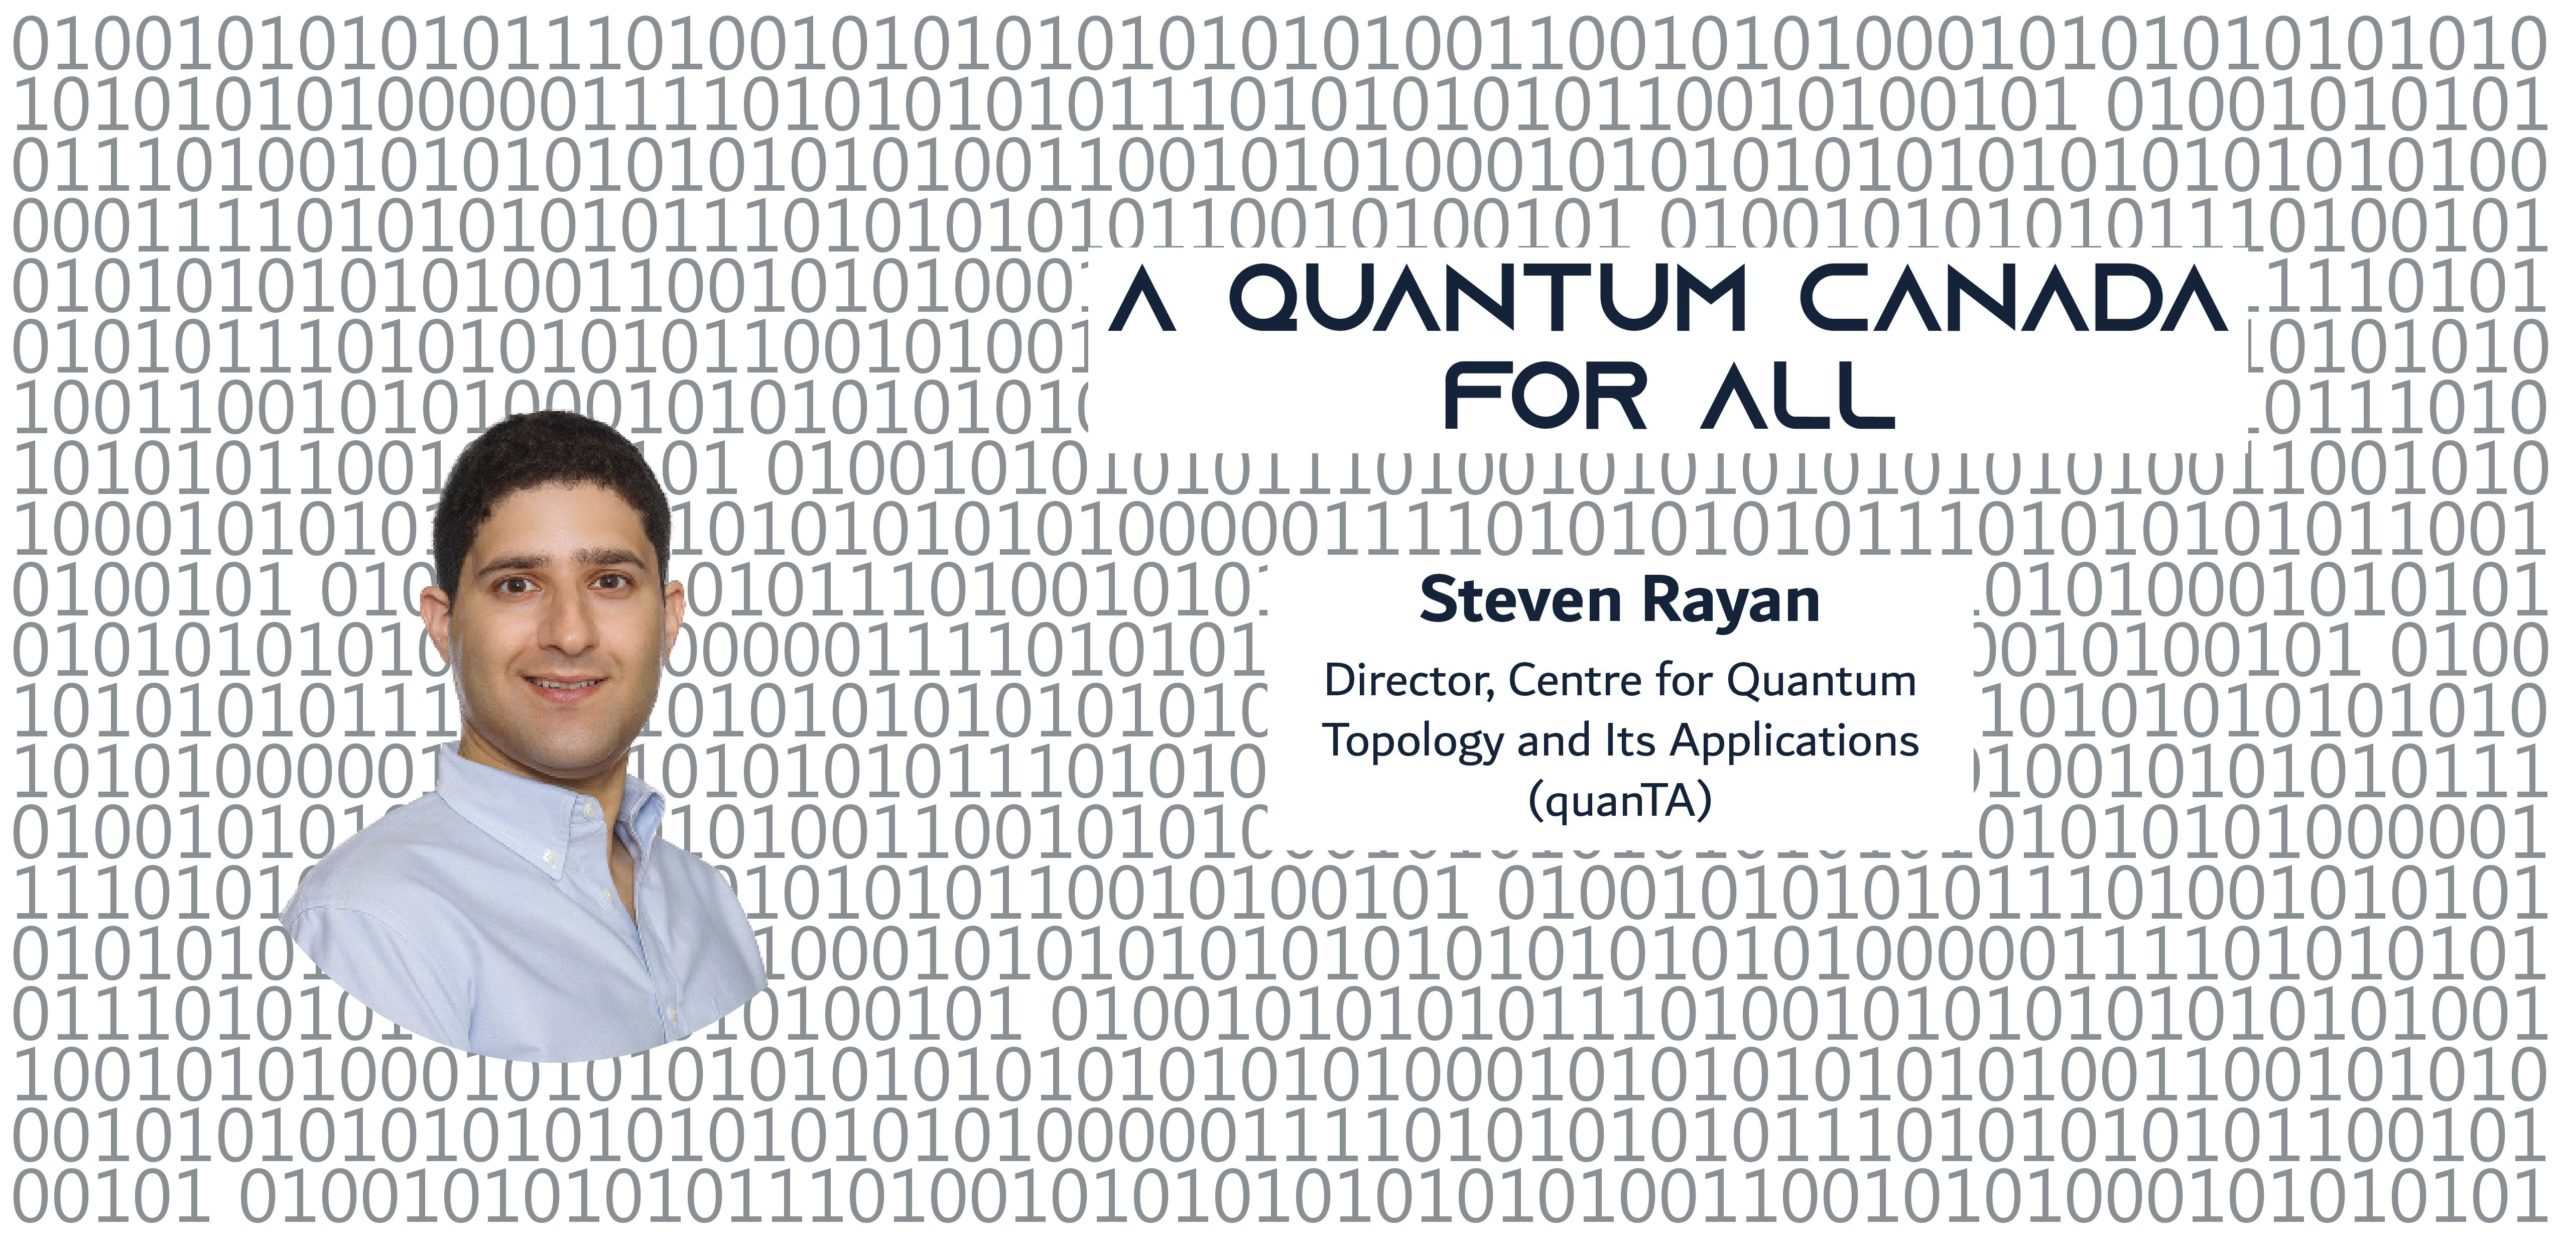 A photo of a man on a background of binary, with the text: A Quantum Canada For All Steven Rayan Director, Centre for Quantum Topology and Its Applications (quanTA) Associate Professor, Mathematics & Statistics, University of Saskatchewan